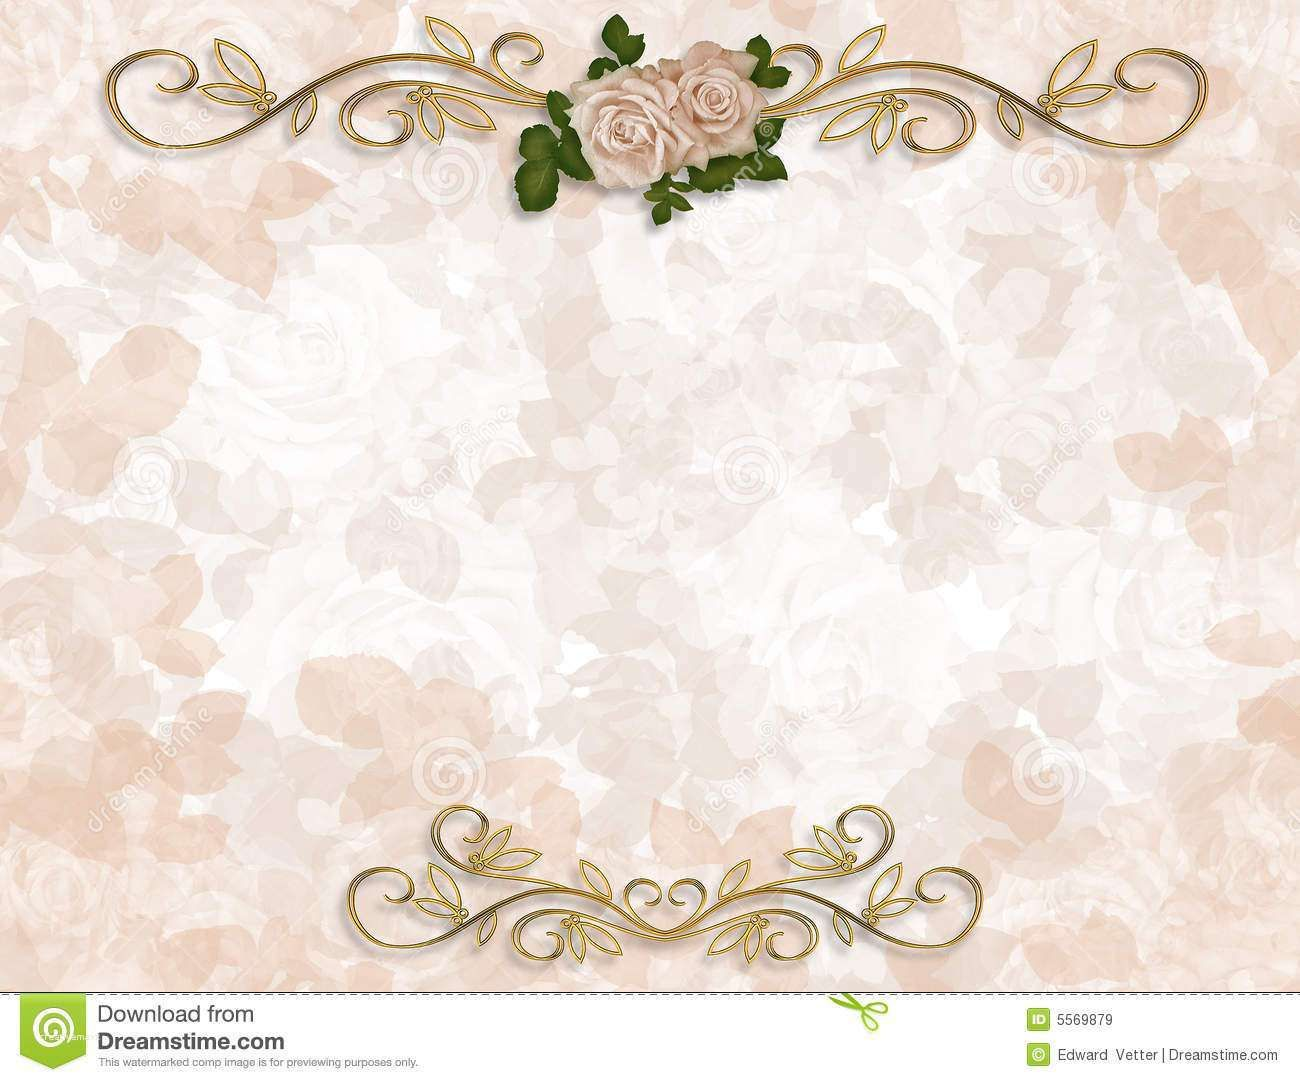 Fresh Wedding Invitation Background Designs Free Download